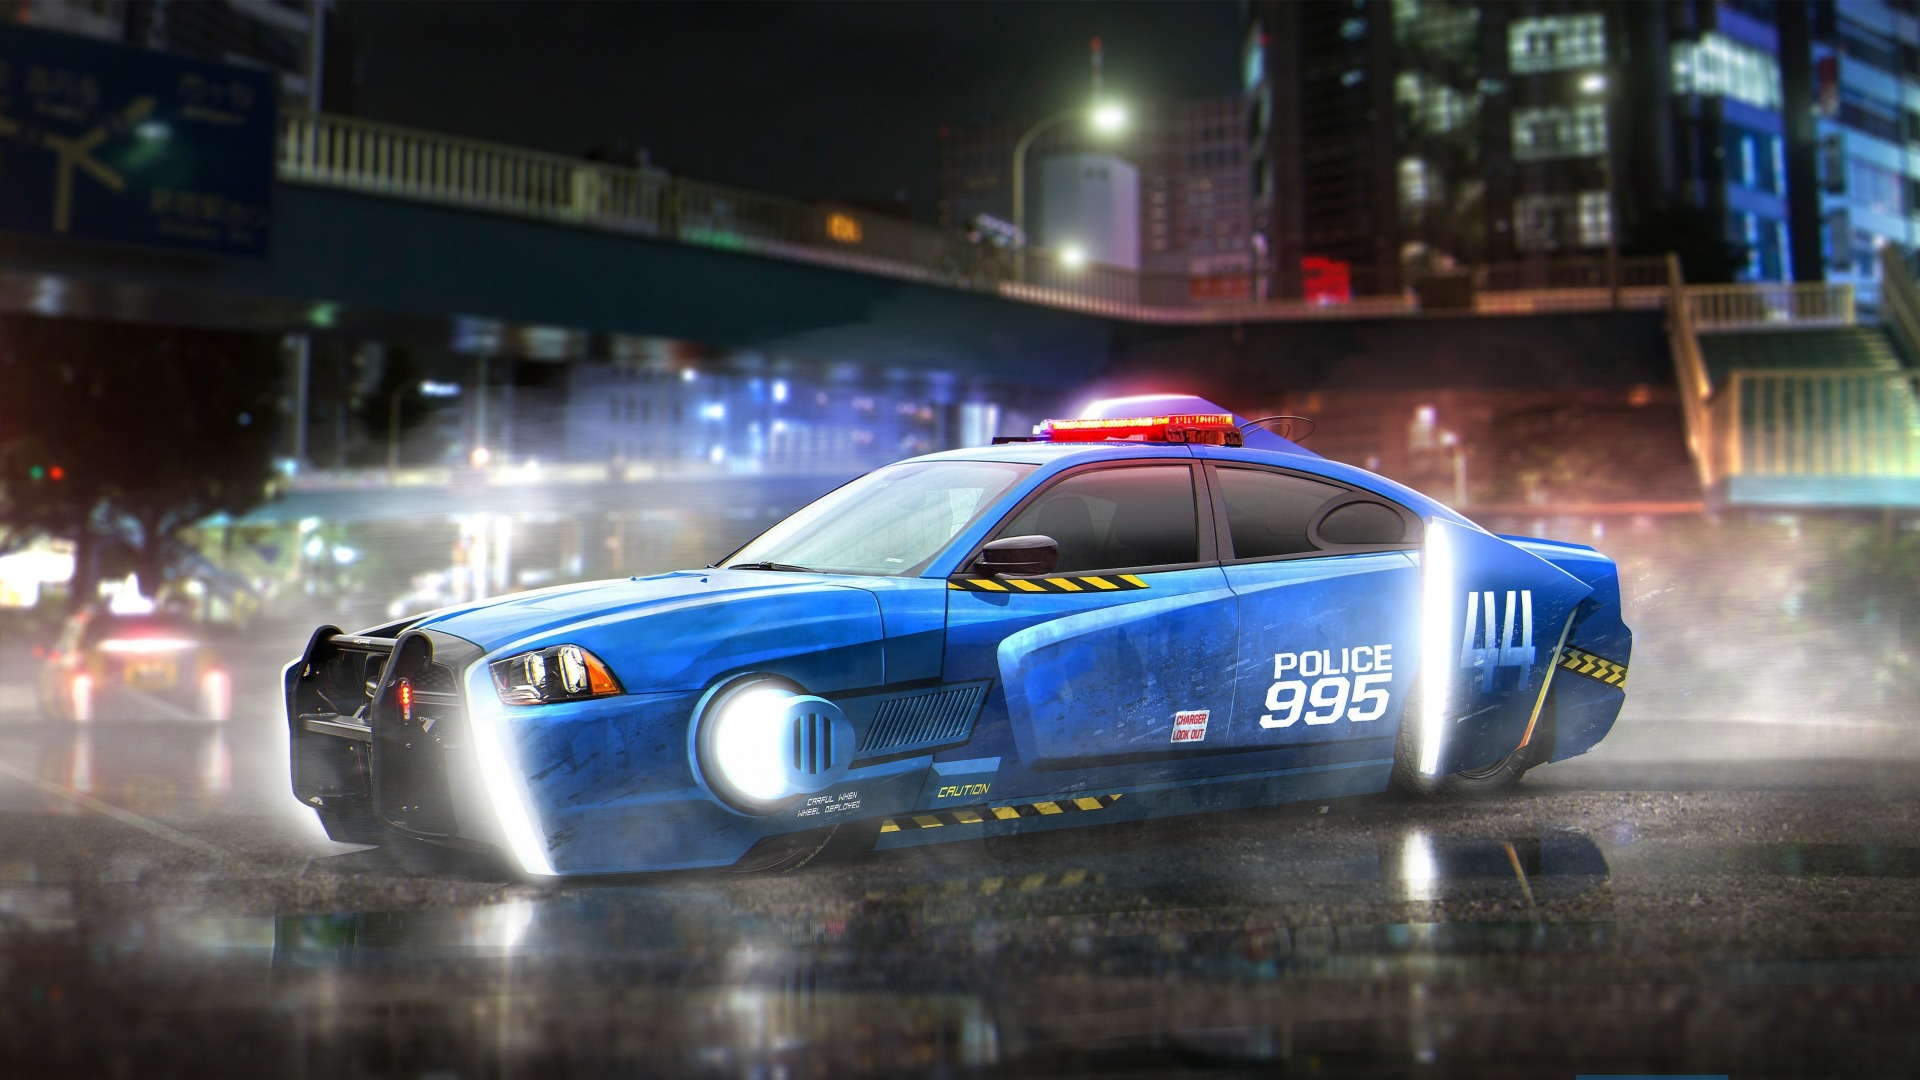 Dodge Charger, police car